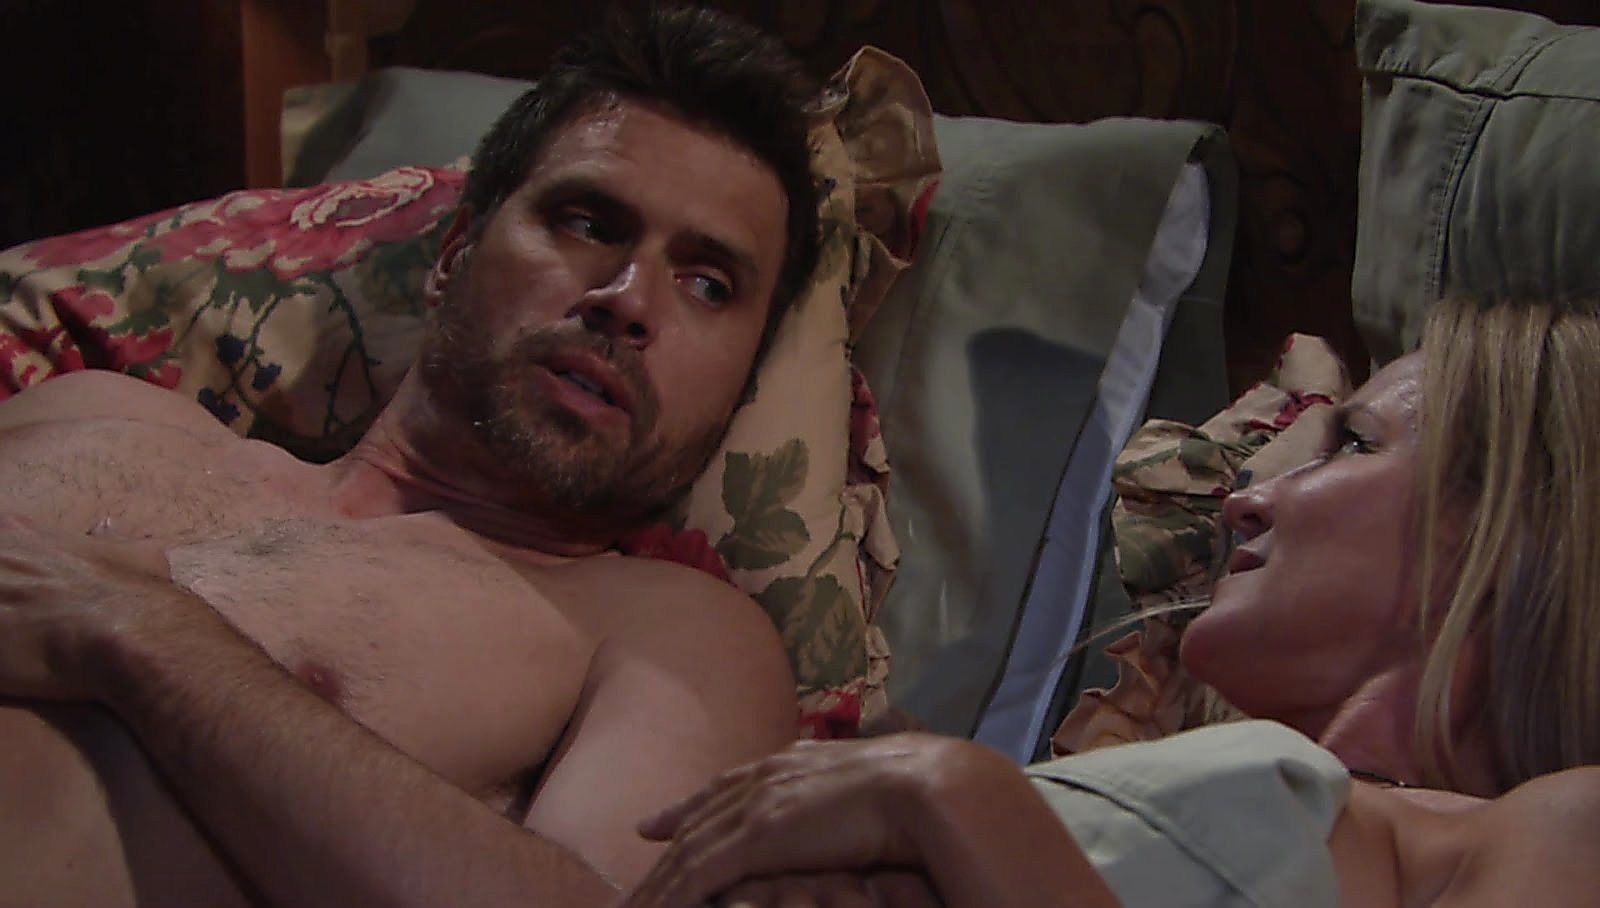 Joshua Morrow sexy shirtless scene May 9, 2018, 11am